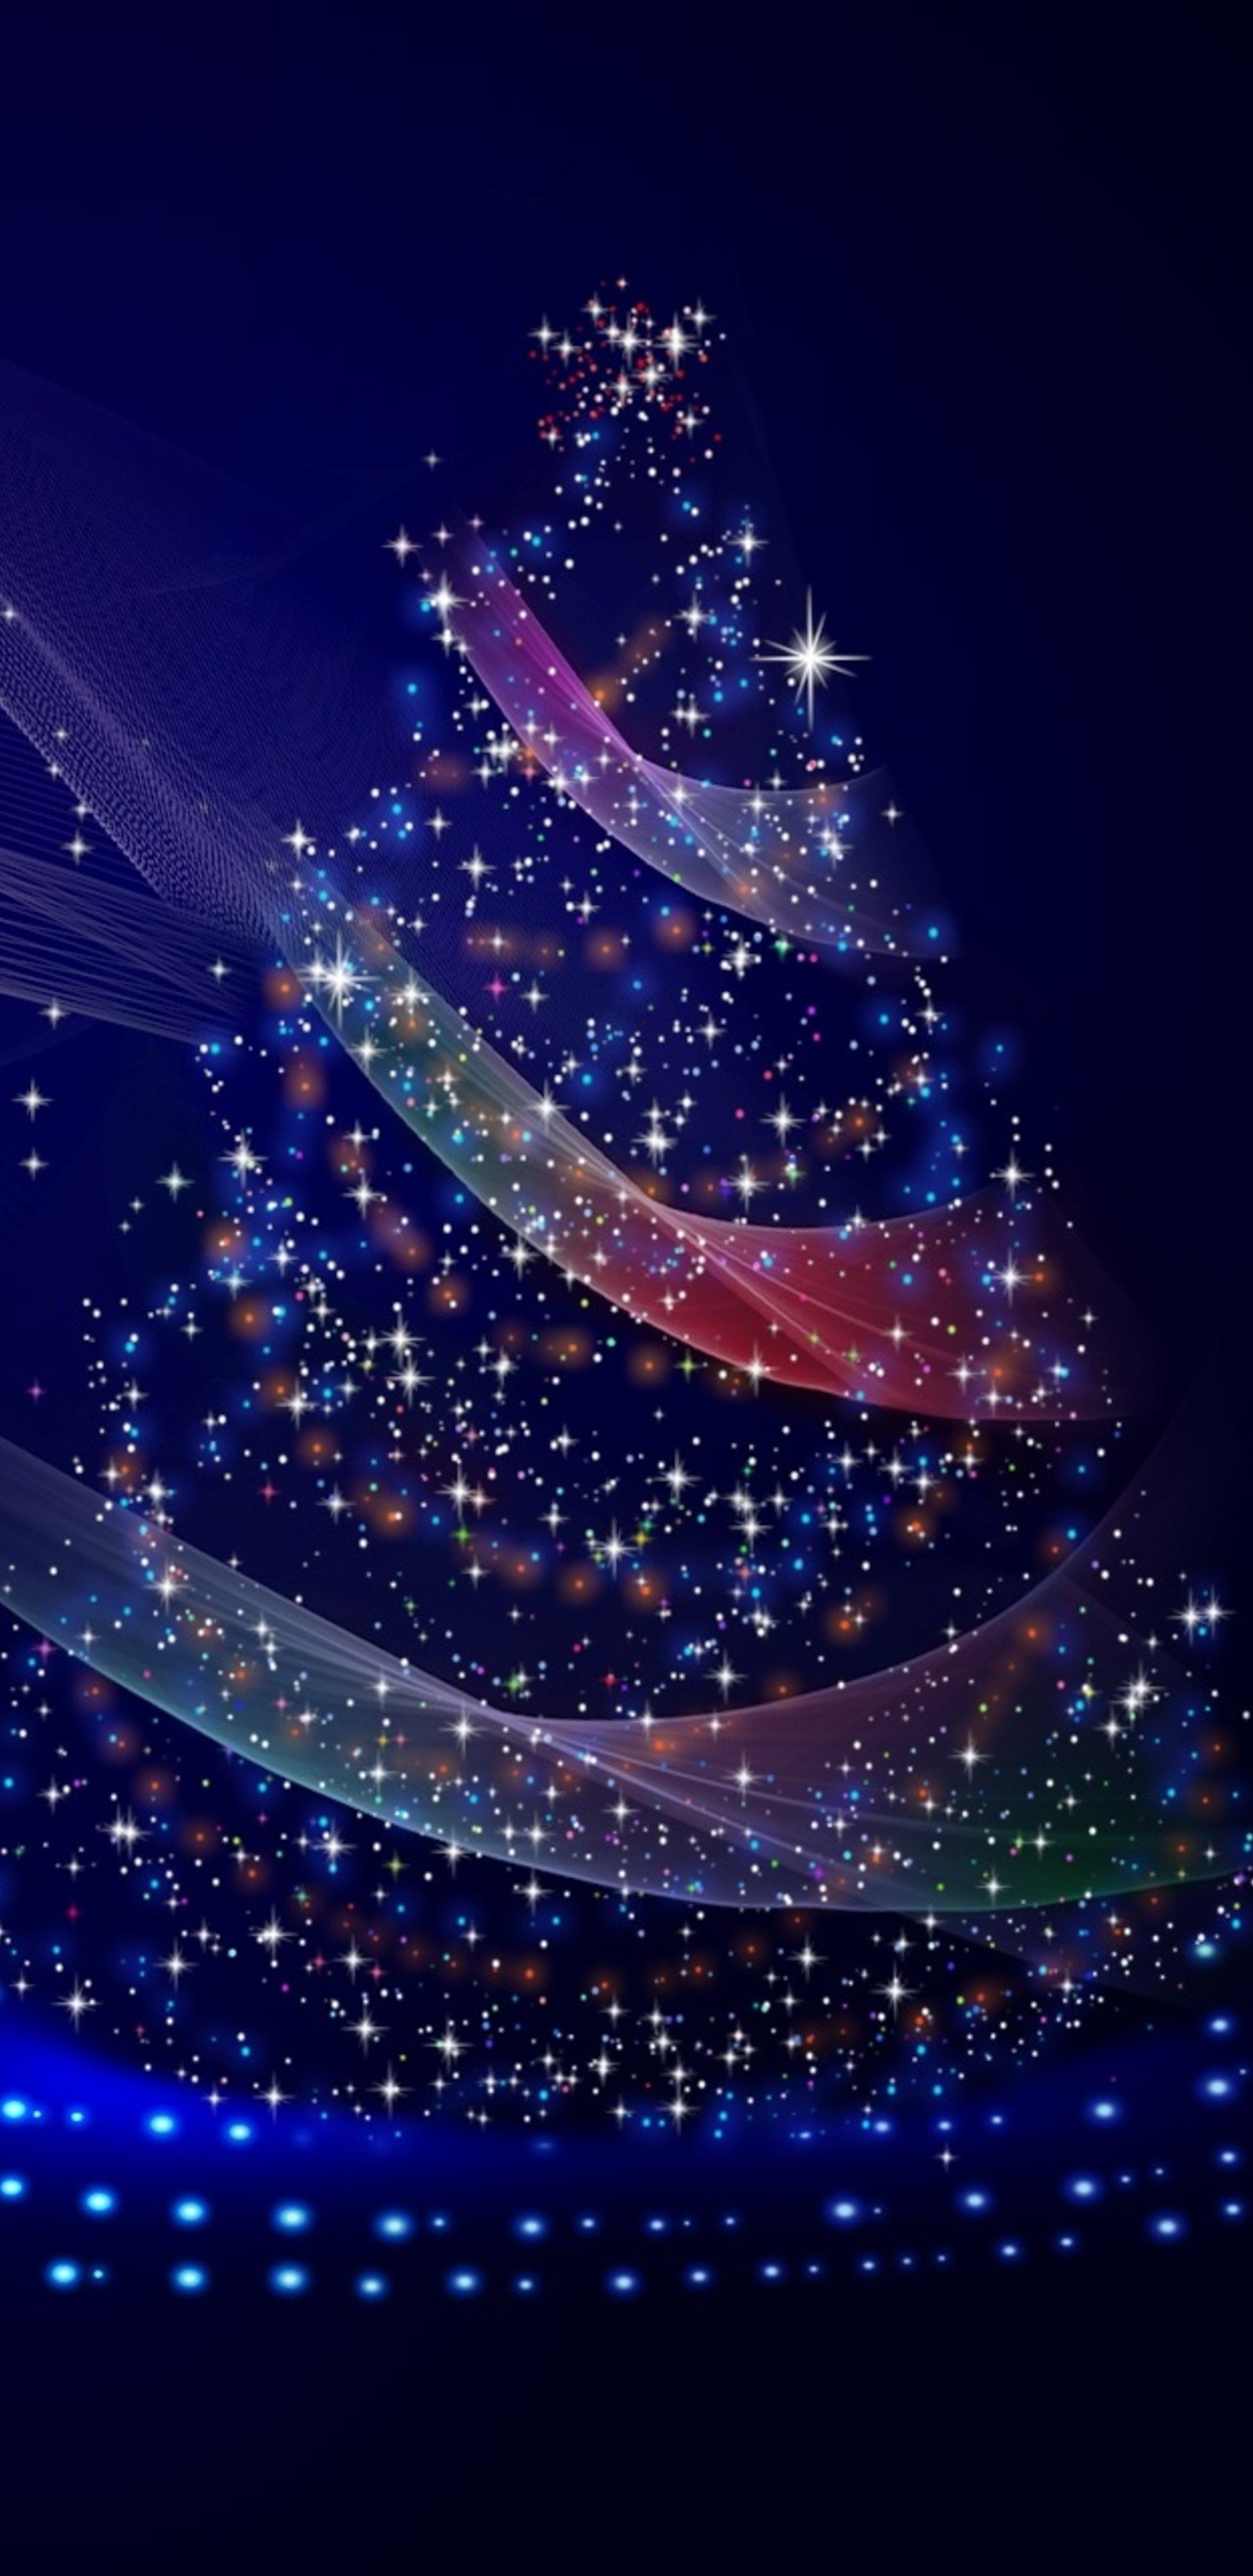 1440x2960 christmas tree illustrations samsung galaxy note - Galaxy christmas wallpaper ...